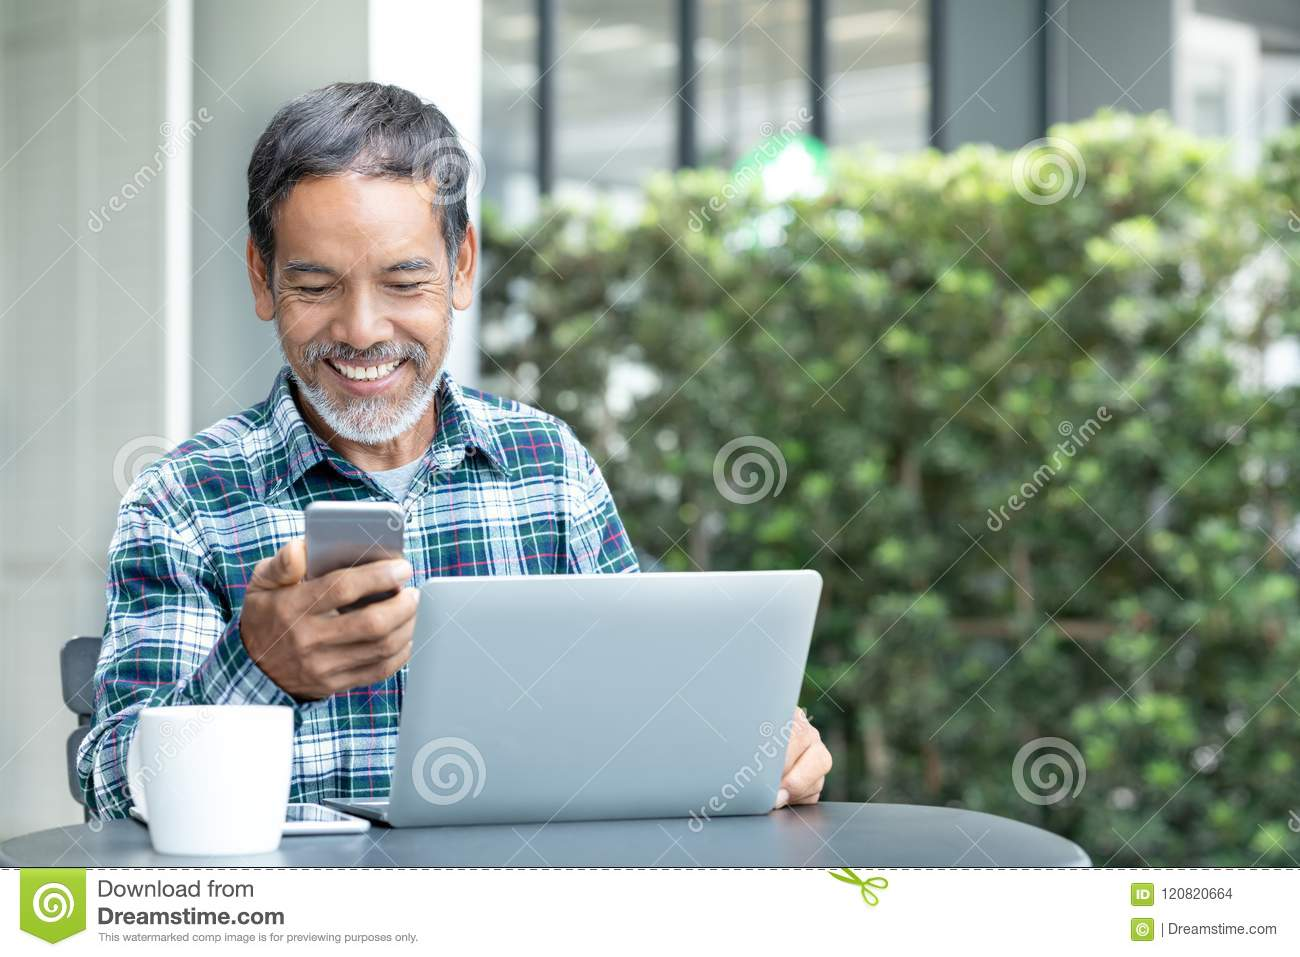 Smiling happy mature man with white stylish short beard using smartphone gadget serving internet